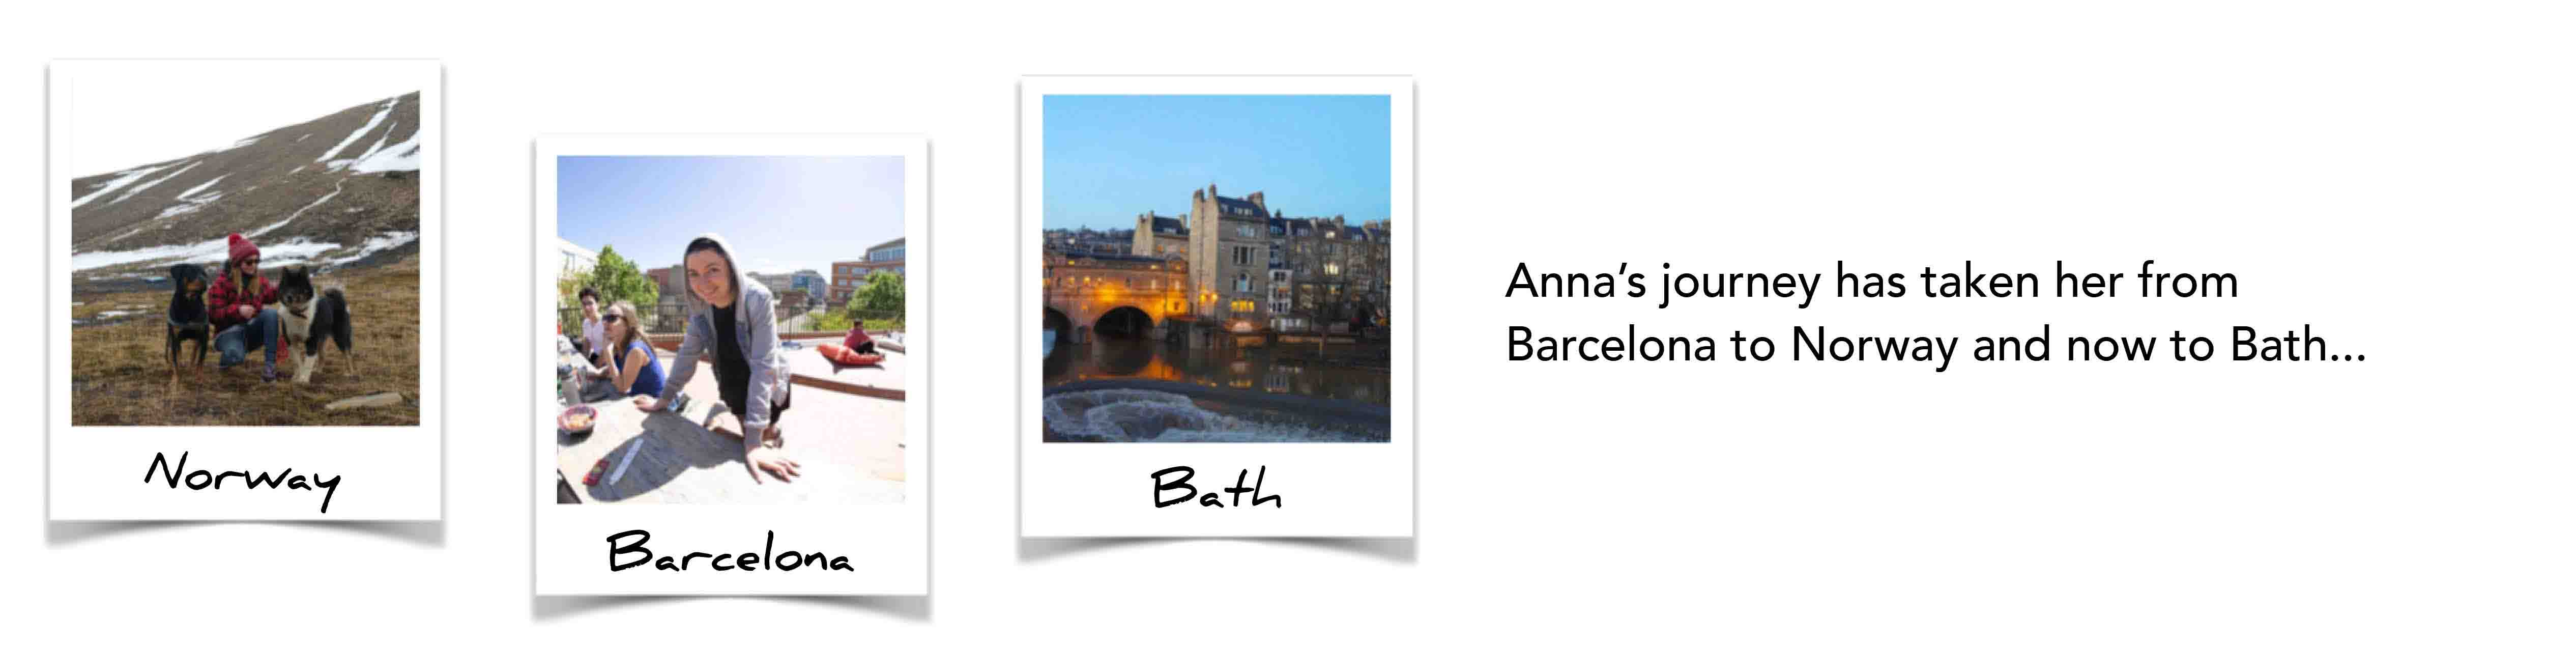 Anna's journey has taken her from Barcelona to Norway and now to Bath...